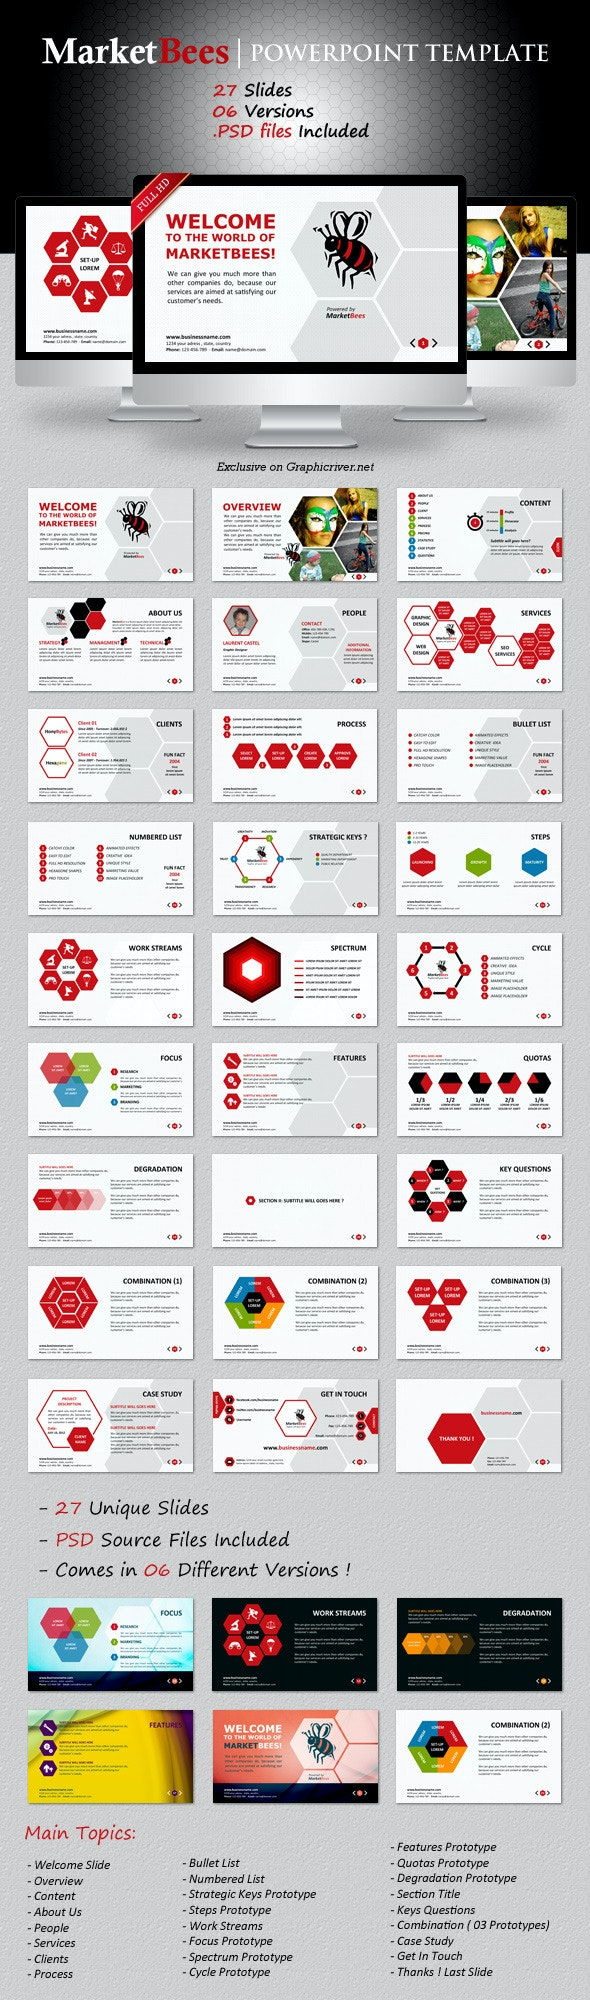 Marketbees PowerPoint Template - Business PowerPoint Templates